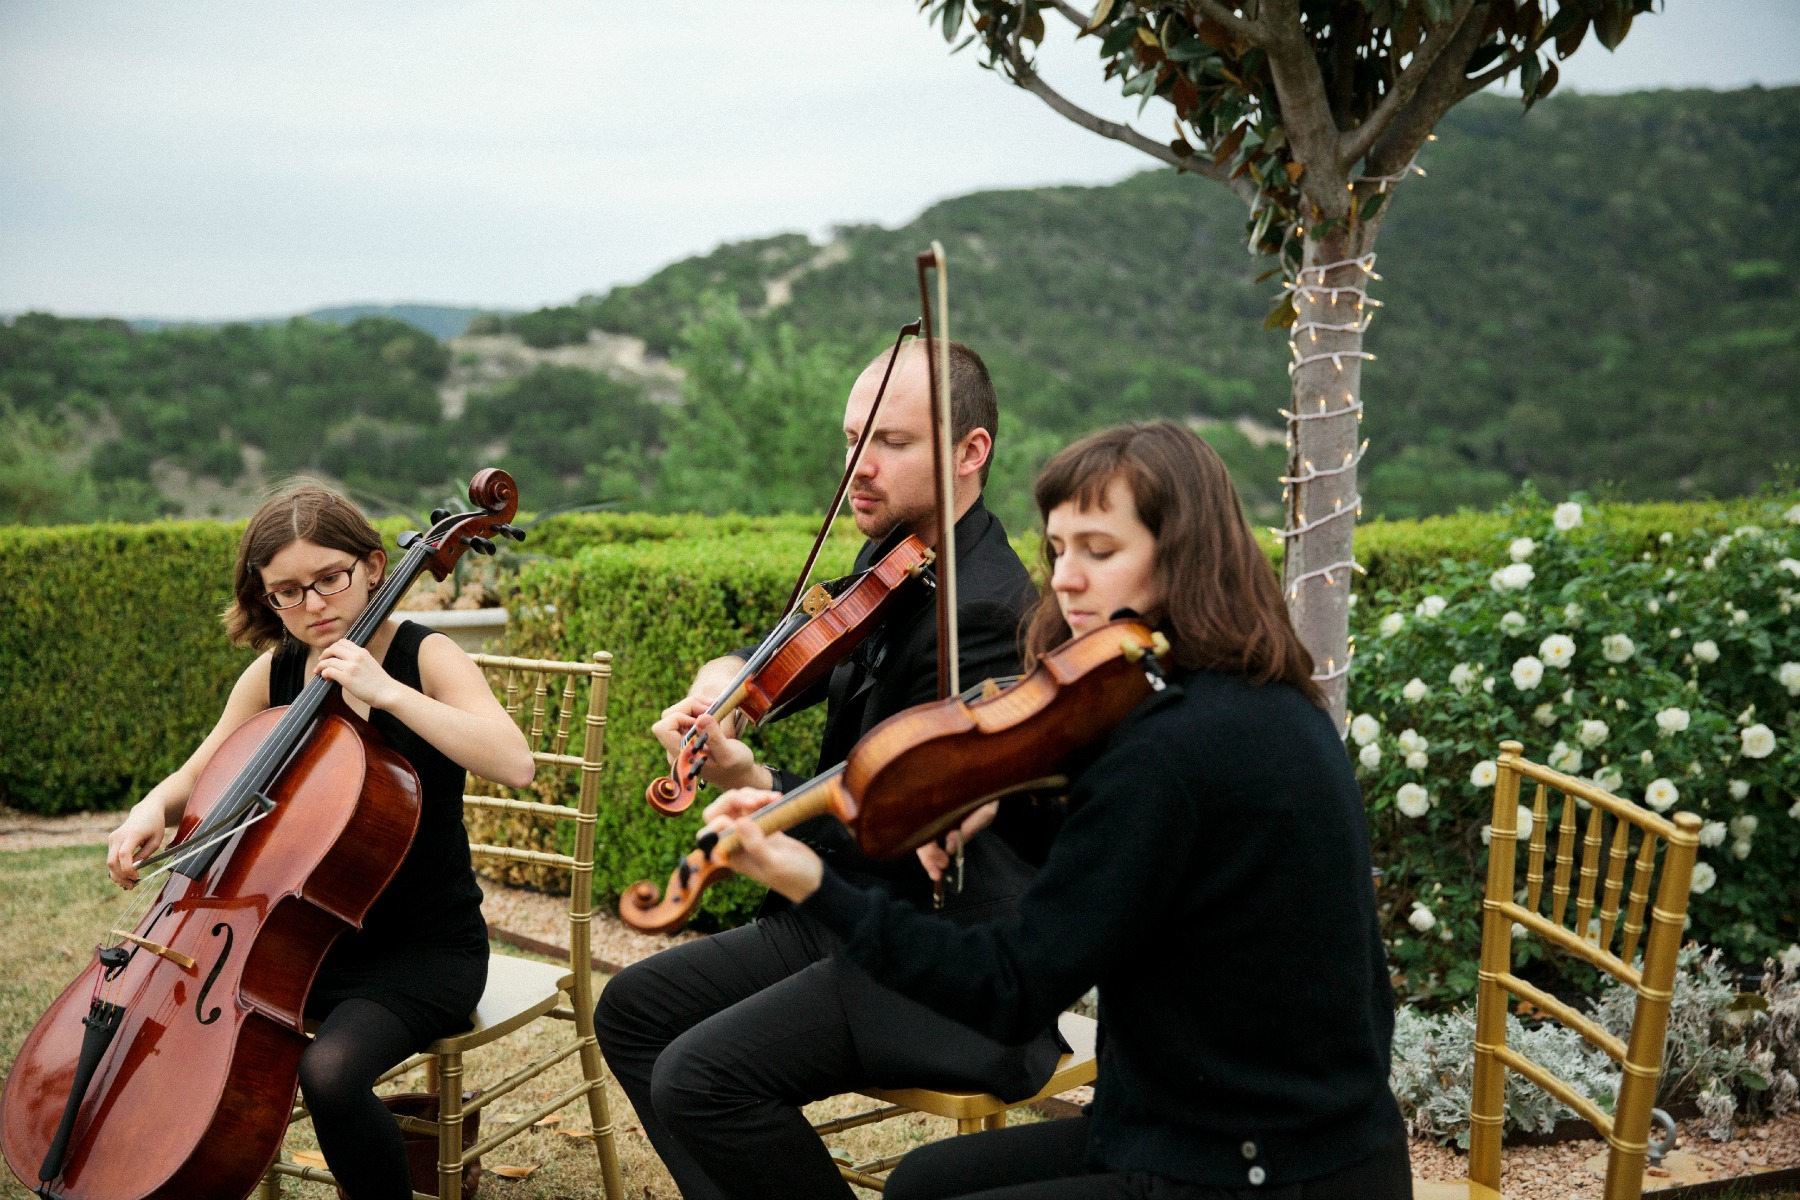 austin violinists playing at wedding ceremony